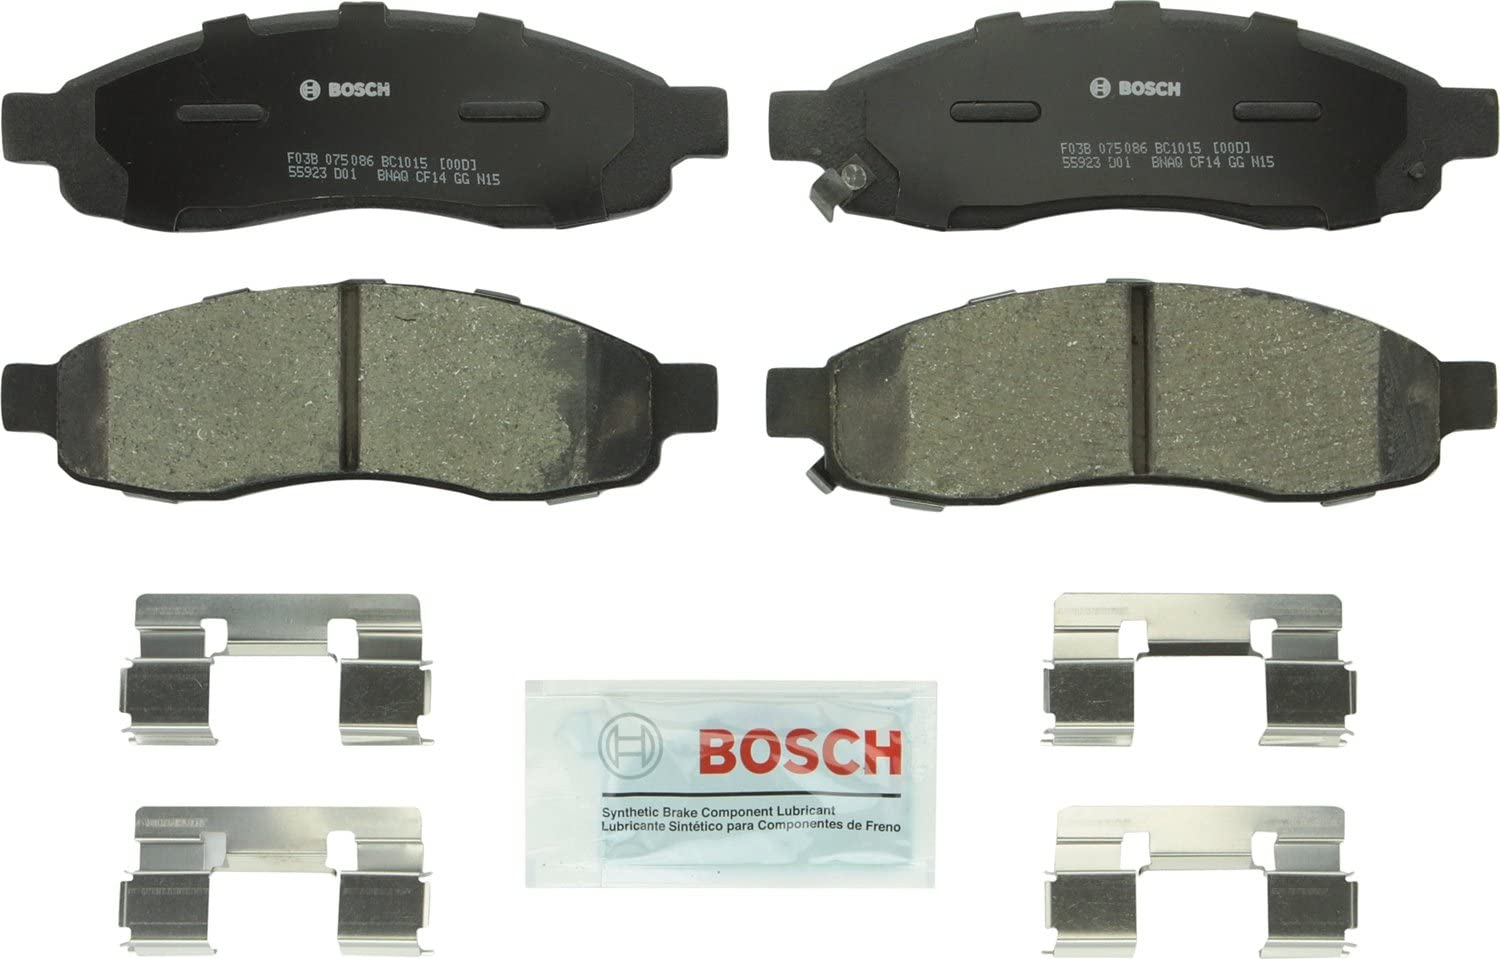 2004-2007 QUEST Front and Rear Ceramic Brake Pads